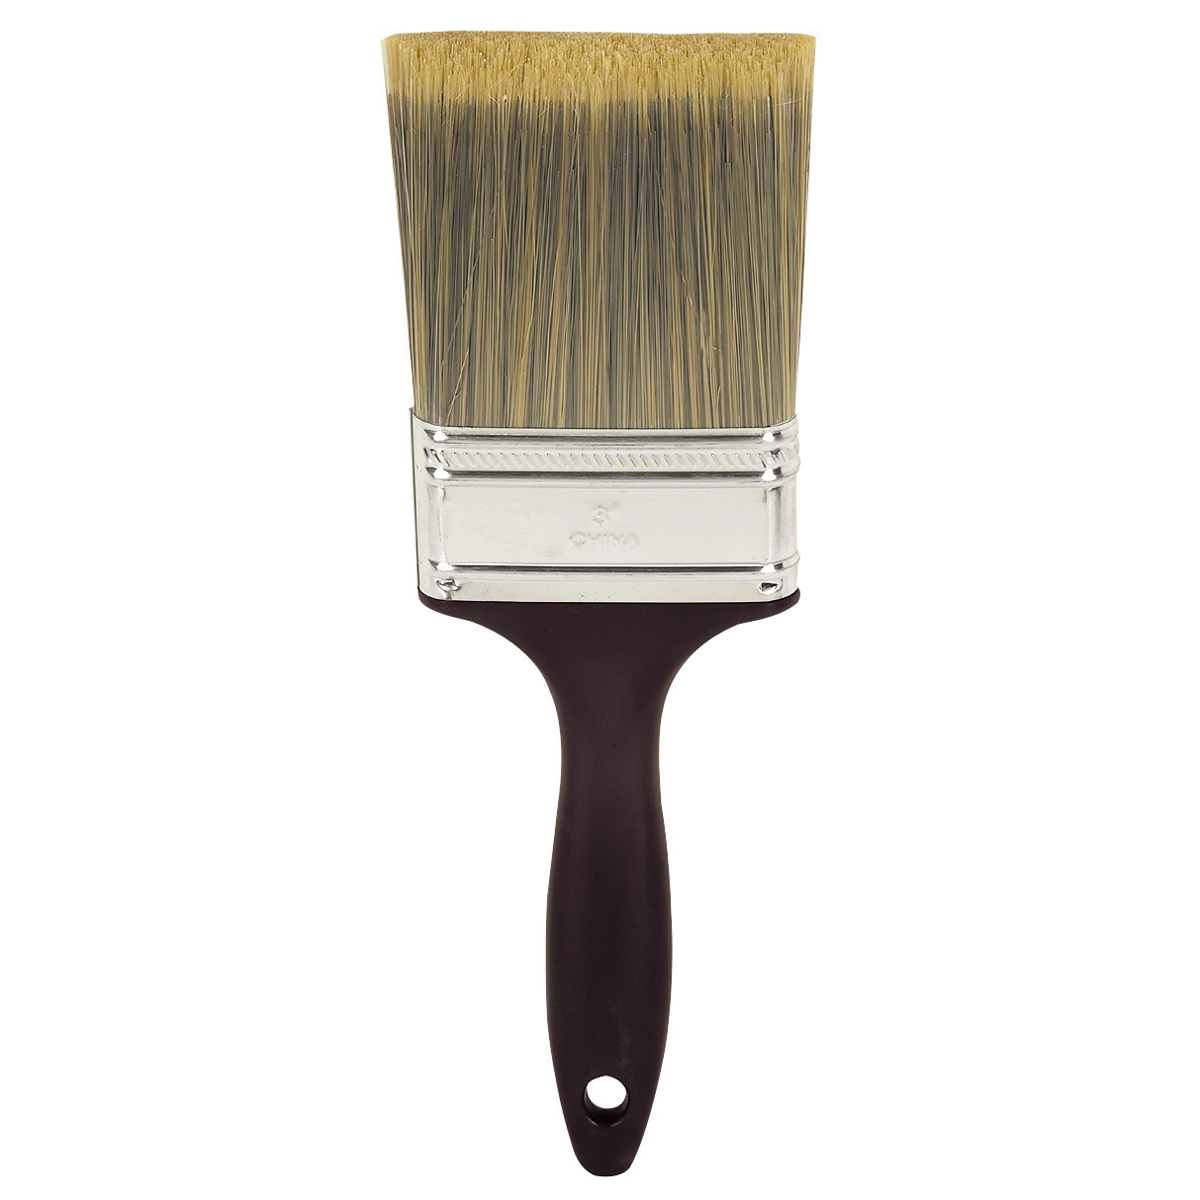 3 in professional paint brush